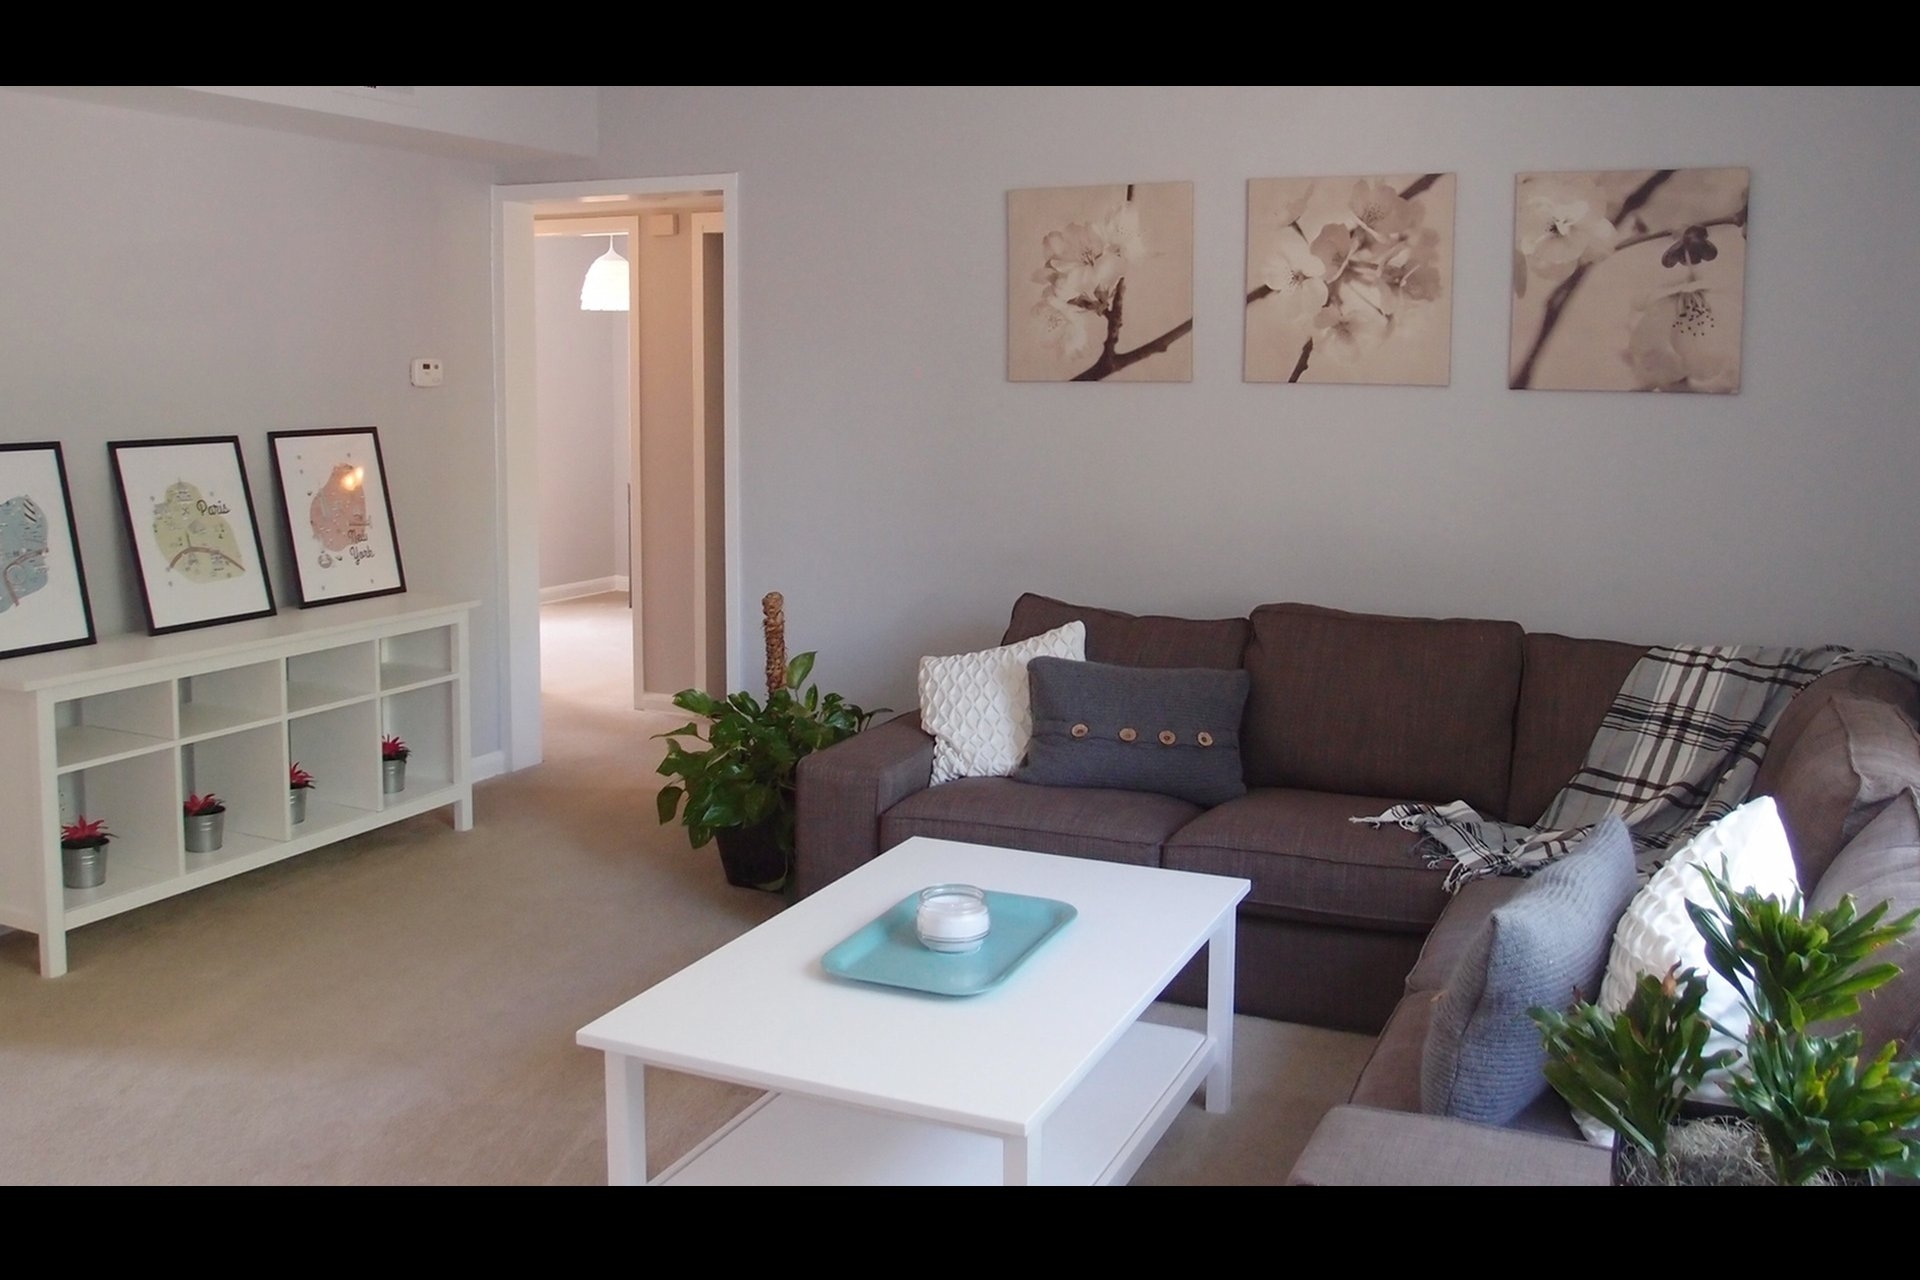 Apartments For Rent In St. Louis Mo   Hampton Gardens regarding Hampton Gardens Apartments